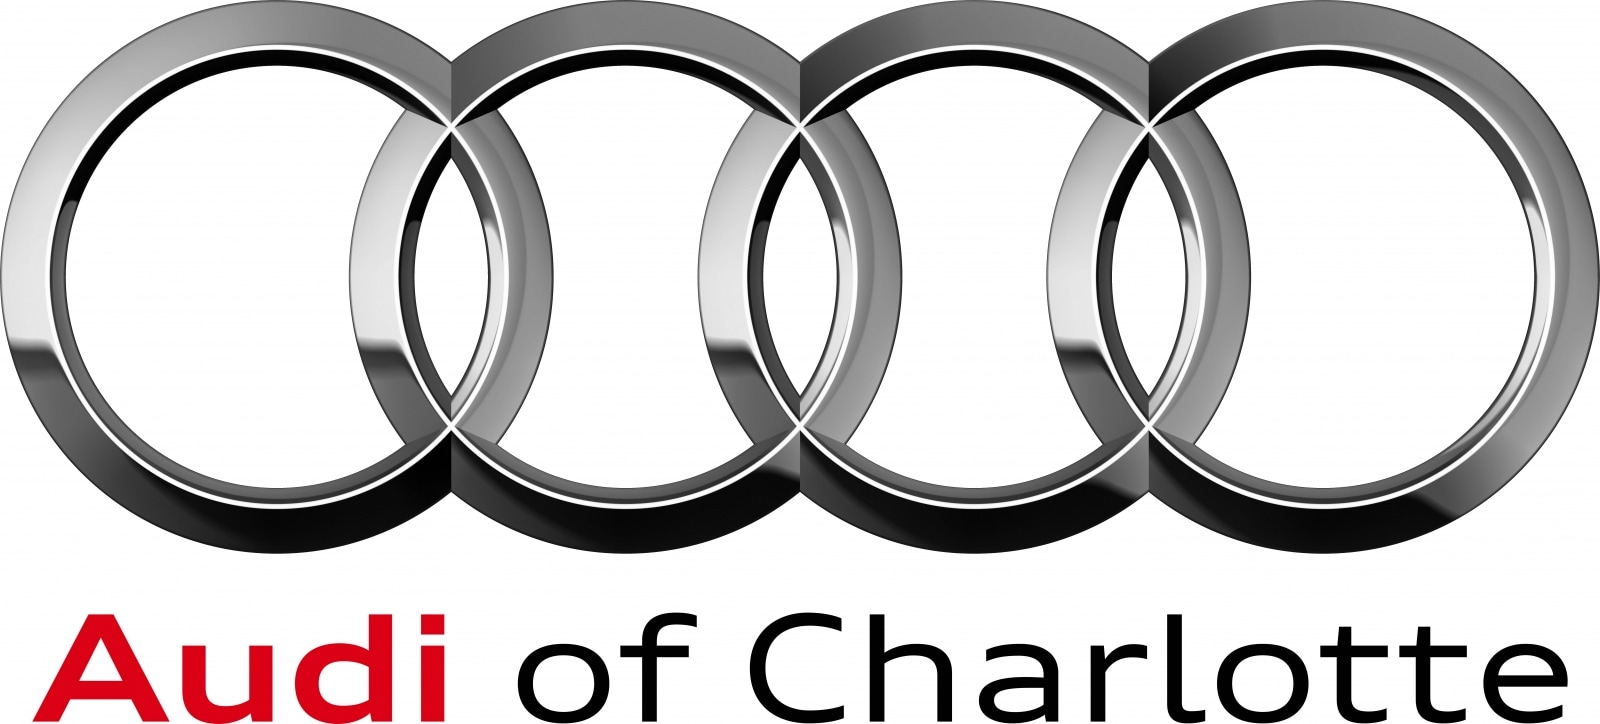 Audi Of Charlotte New Audi Dealership In Matthews NC - Audi certified pre owned warranty review